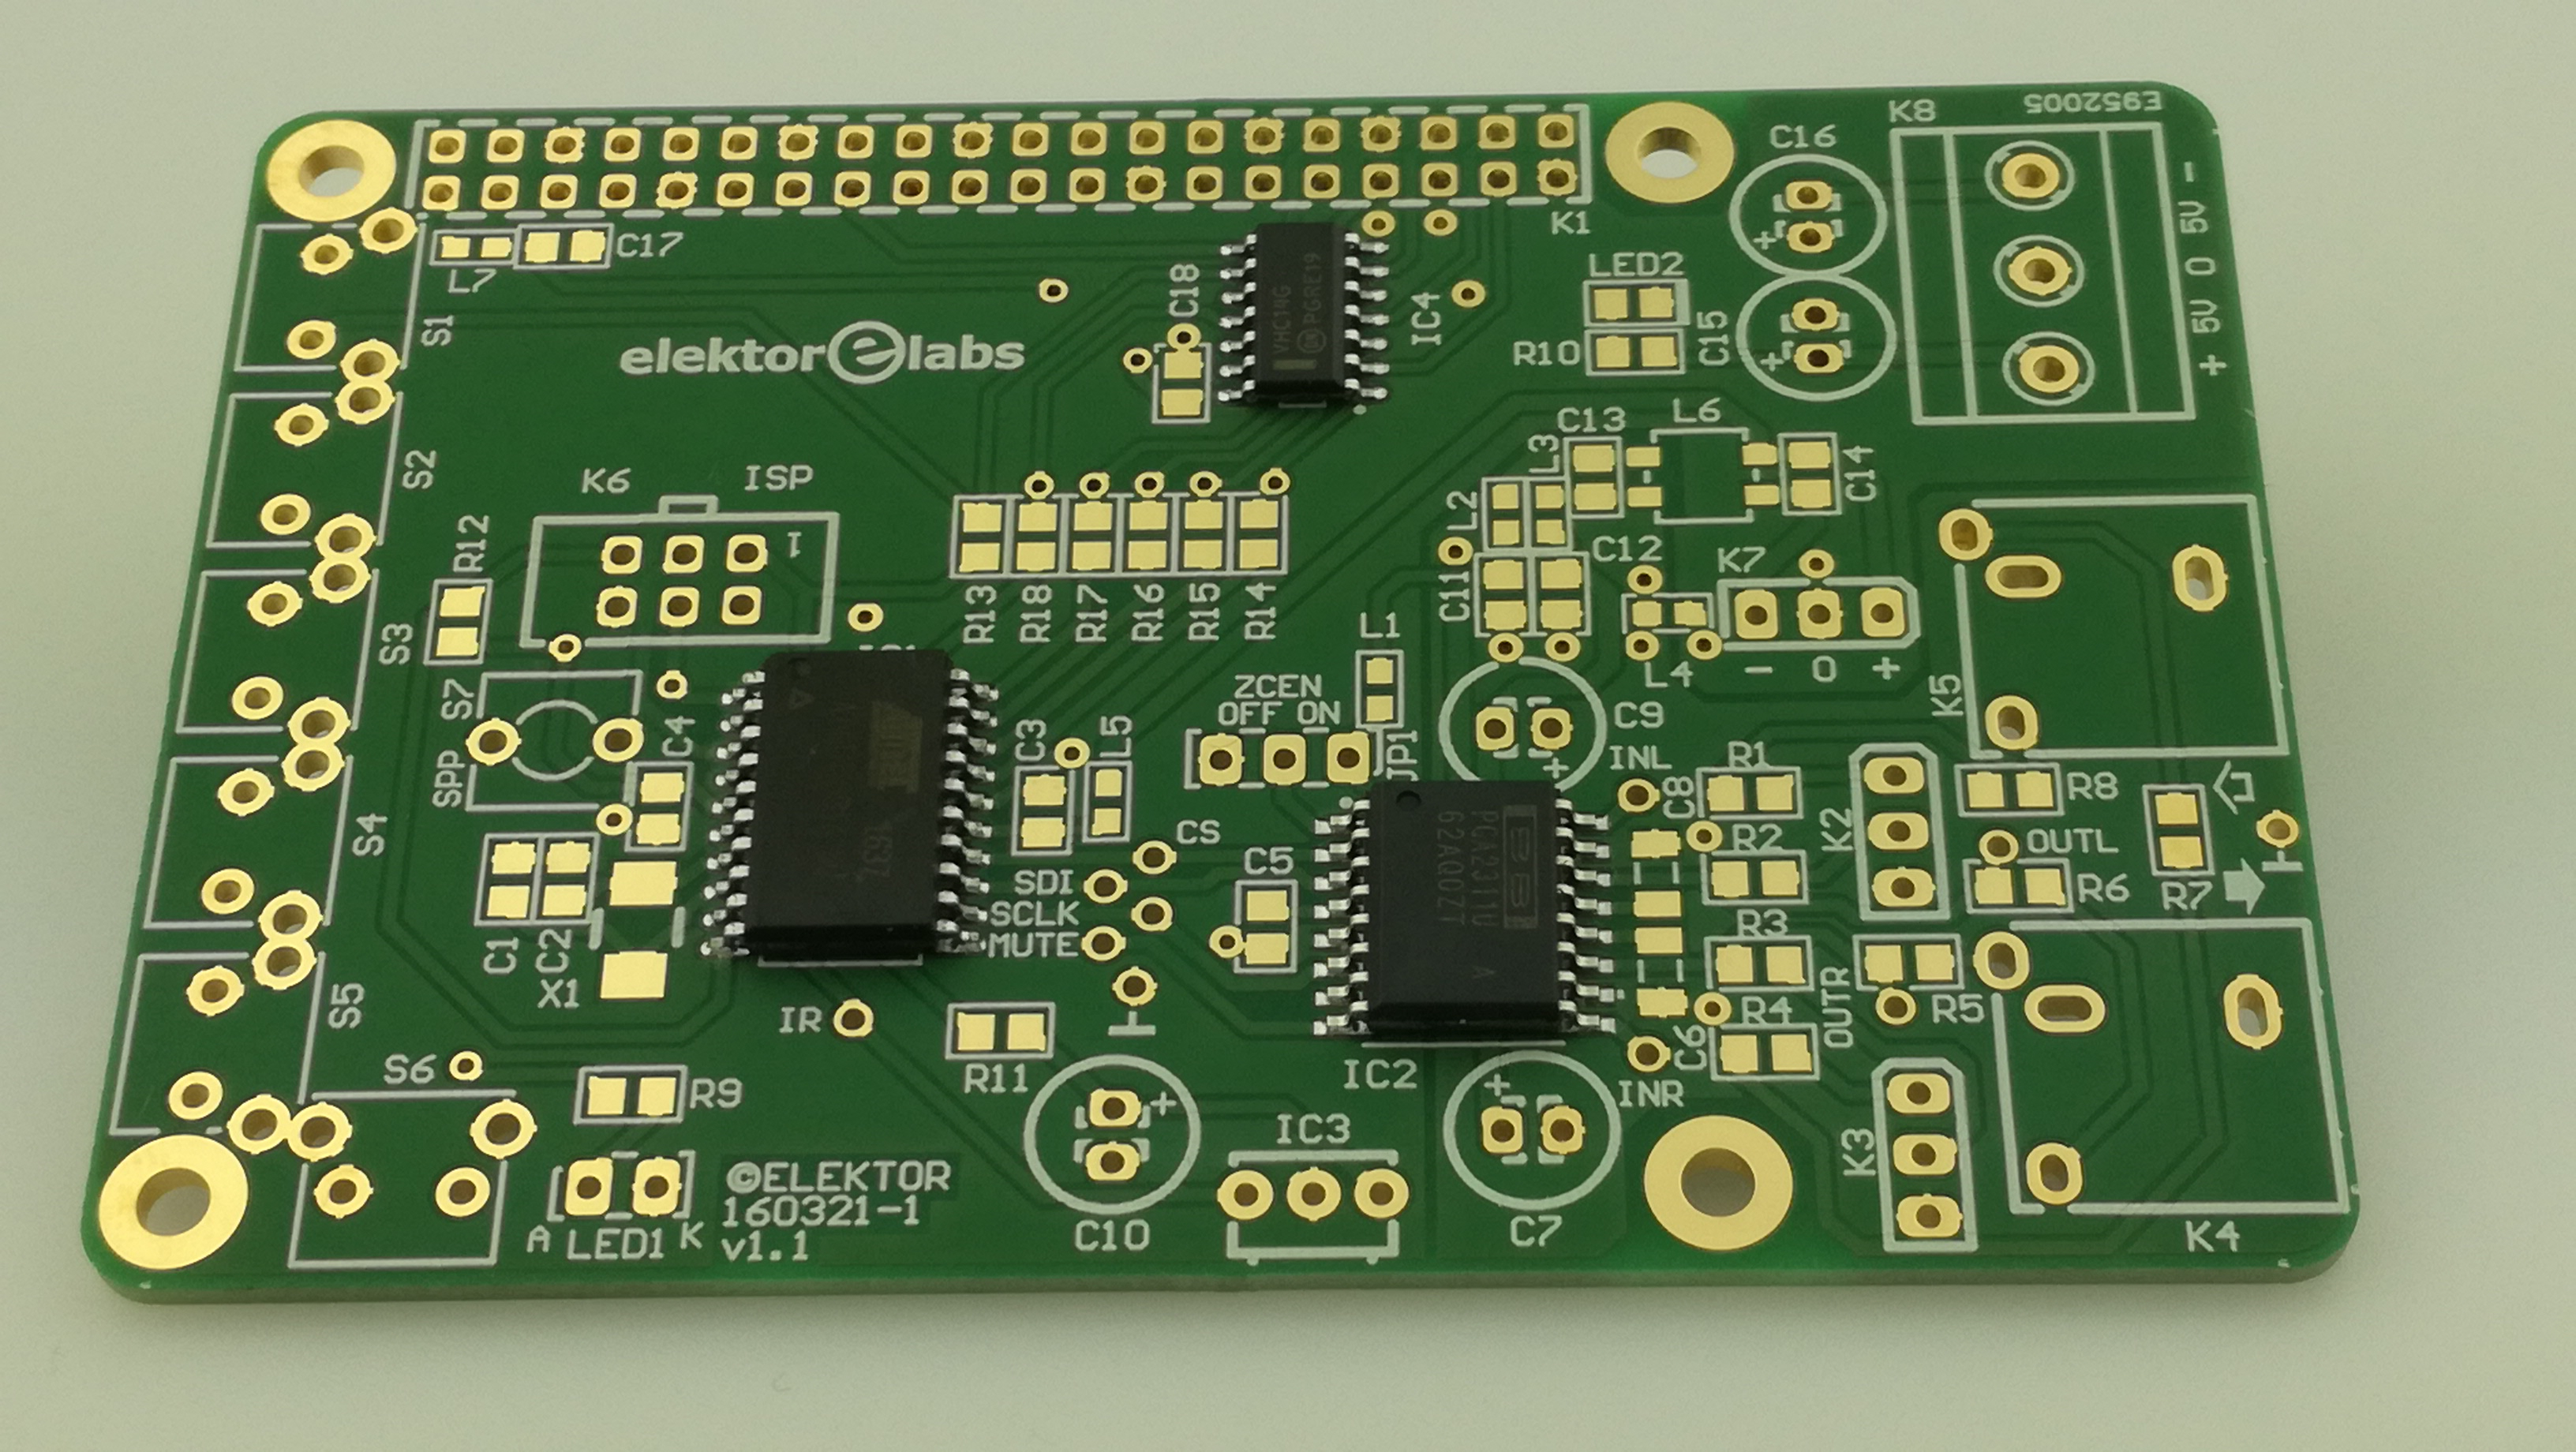 Volume Control for RPi Audio DAC - PCB with IC1,2,4 mounted (160321-71)